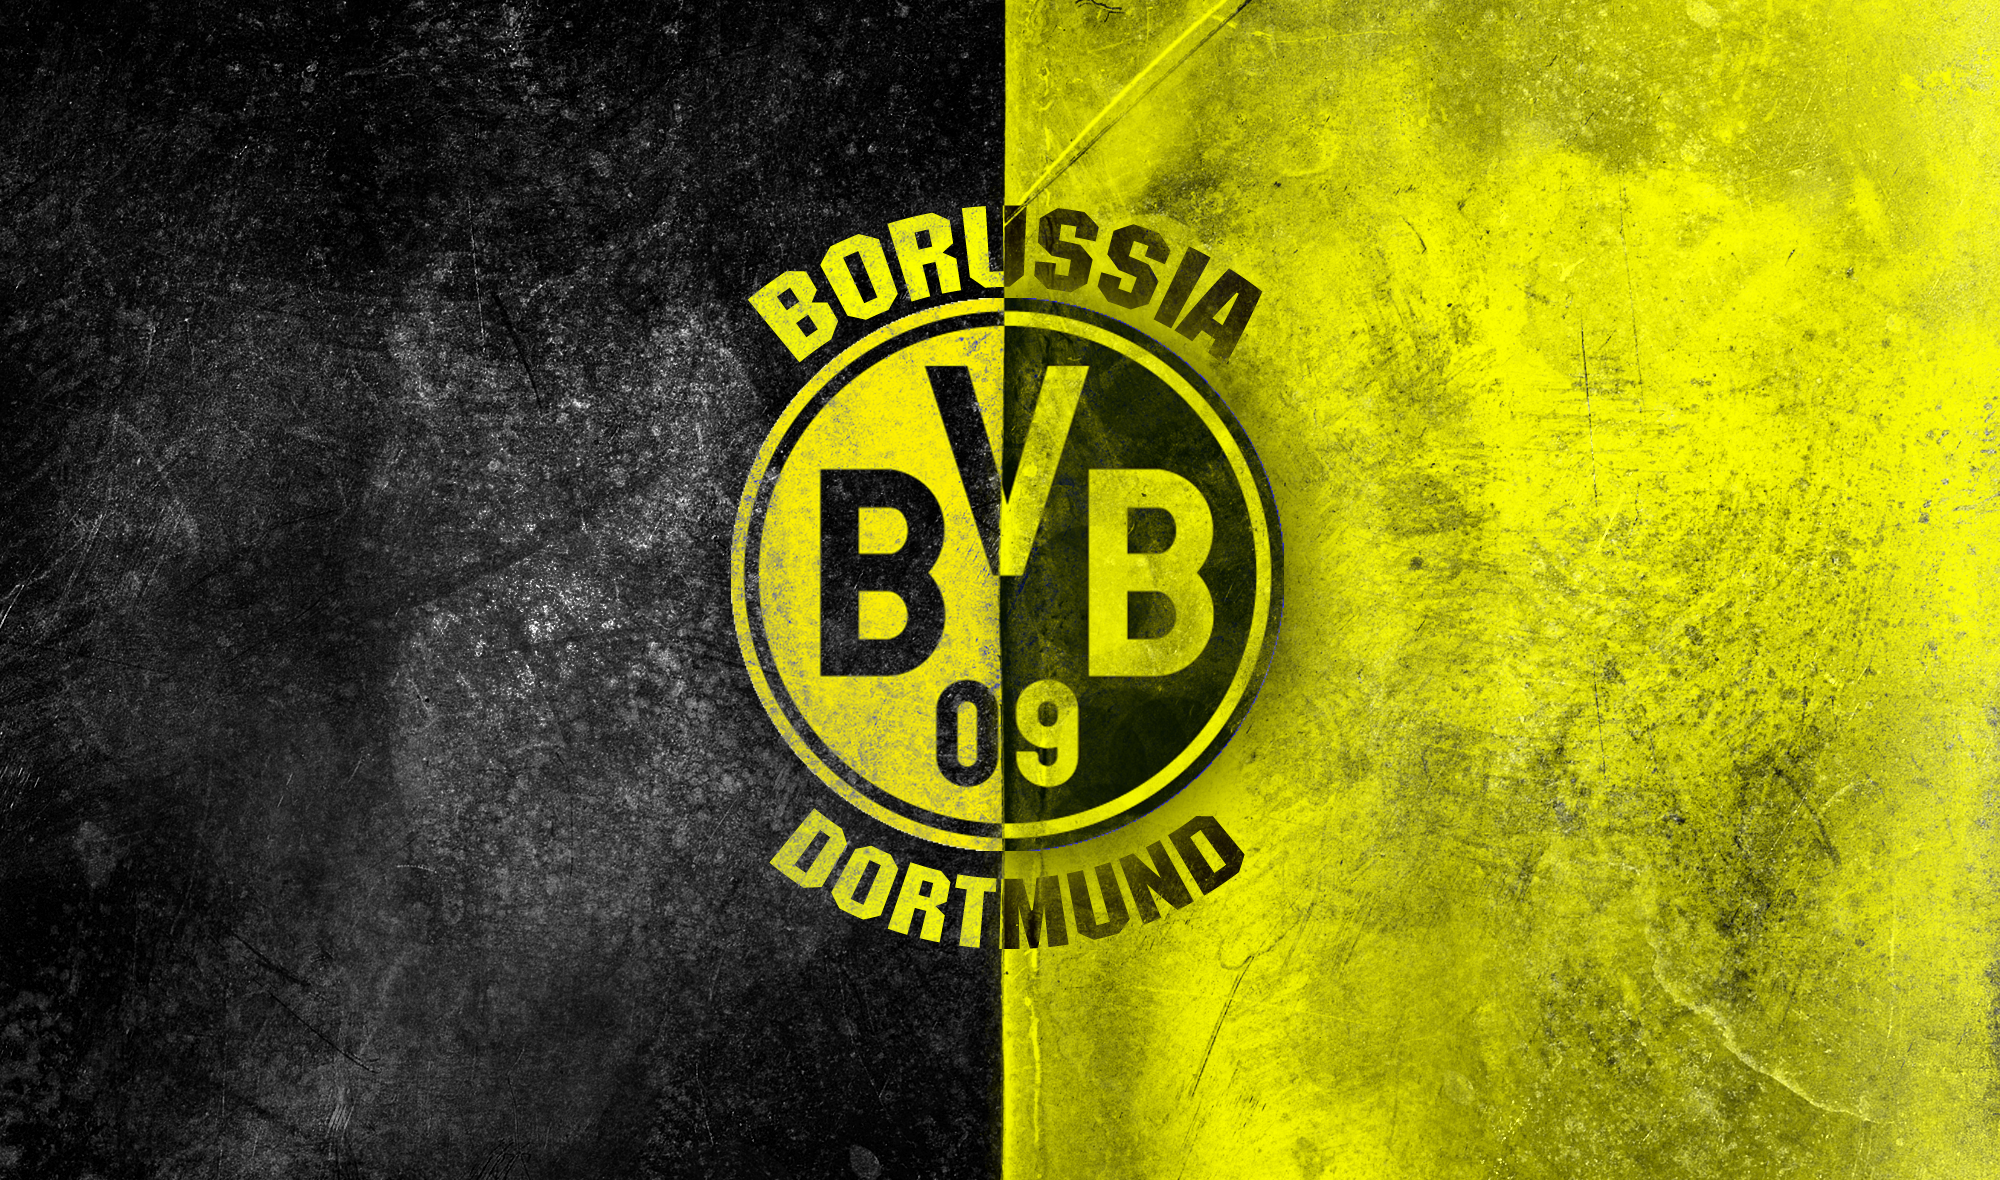 Borussia Dortmund: The Ultimate Game of Two Halves?